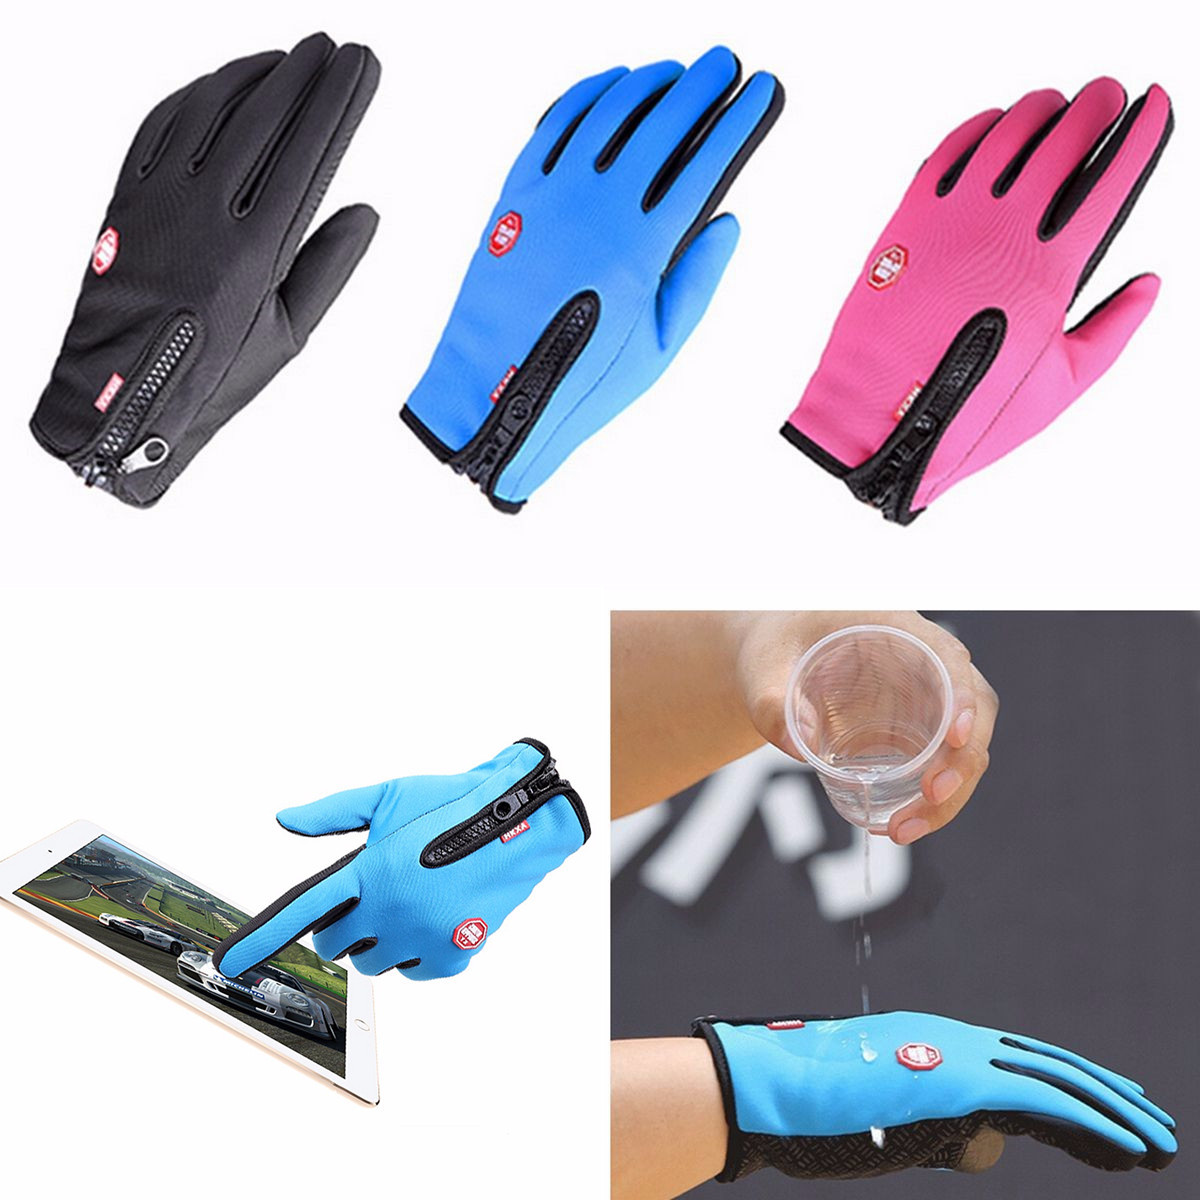 Unisex Warm Windproof Waterproof Touch Screen Gloves Mittens Fleece Outdoor Cycling Skiing Skid-proof